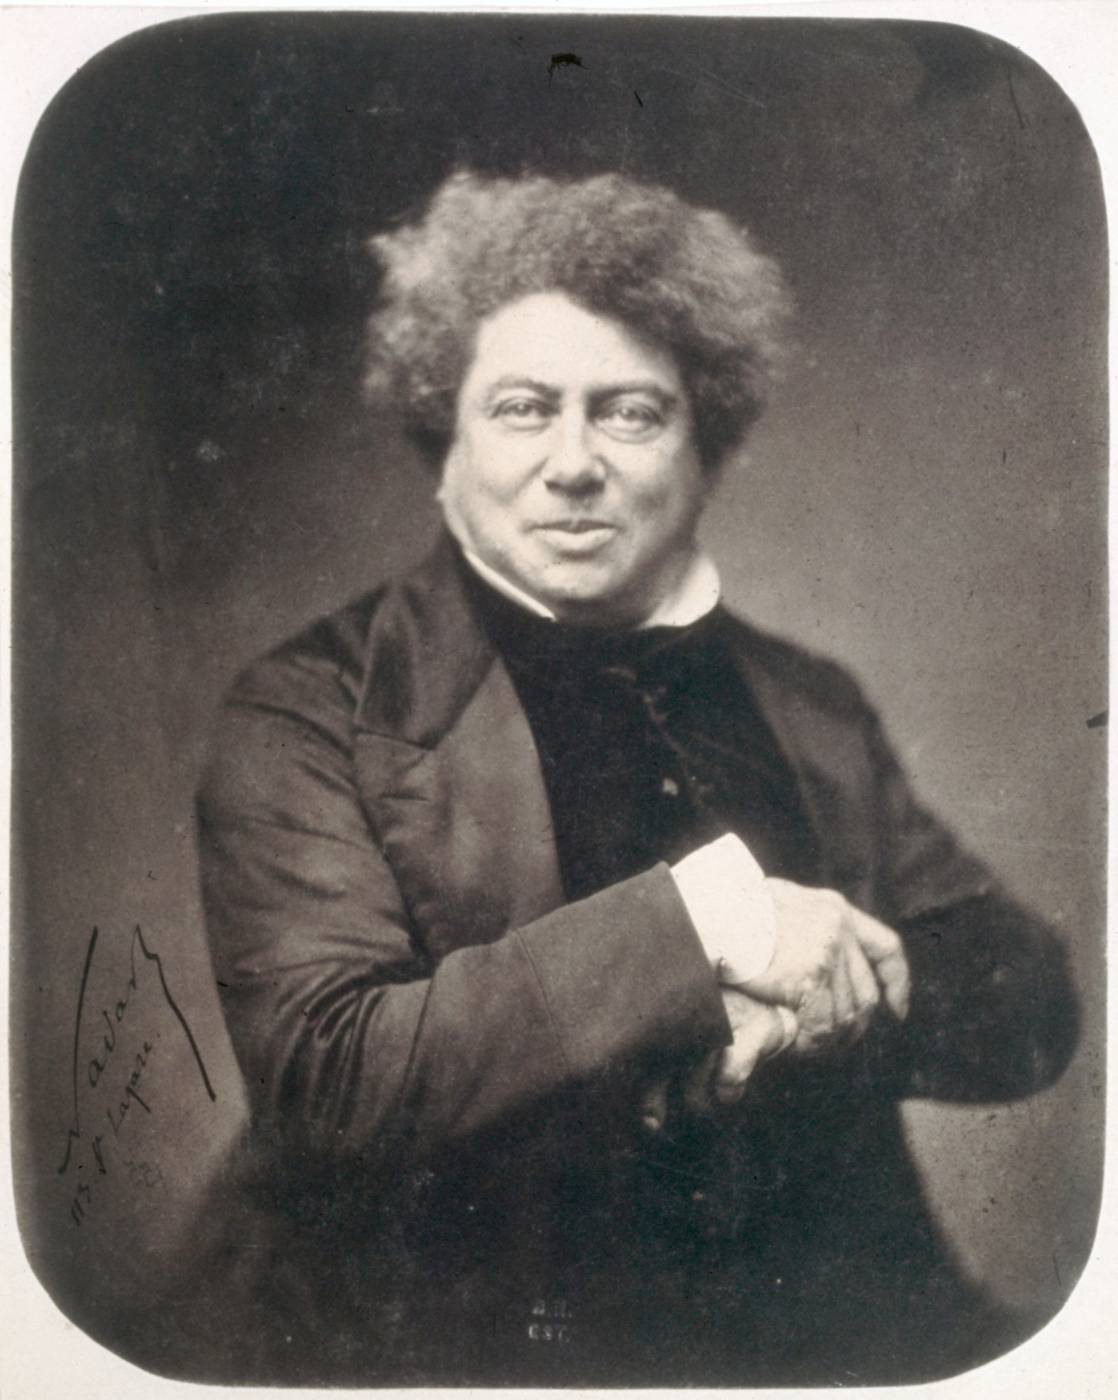 Alexandre Dumas' father Thomas-Alexandre was descended from a French noble and a slave of African descent. He also became the highest-ranking man of mixed African descent ever in a European army, during the French Revolutionary Wars. Do we know of attitudes and/or discrimation towards him in France?